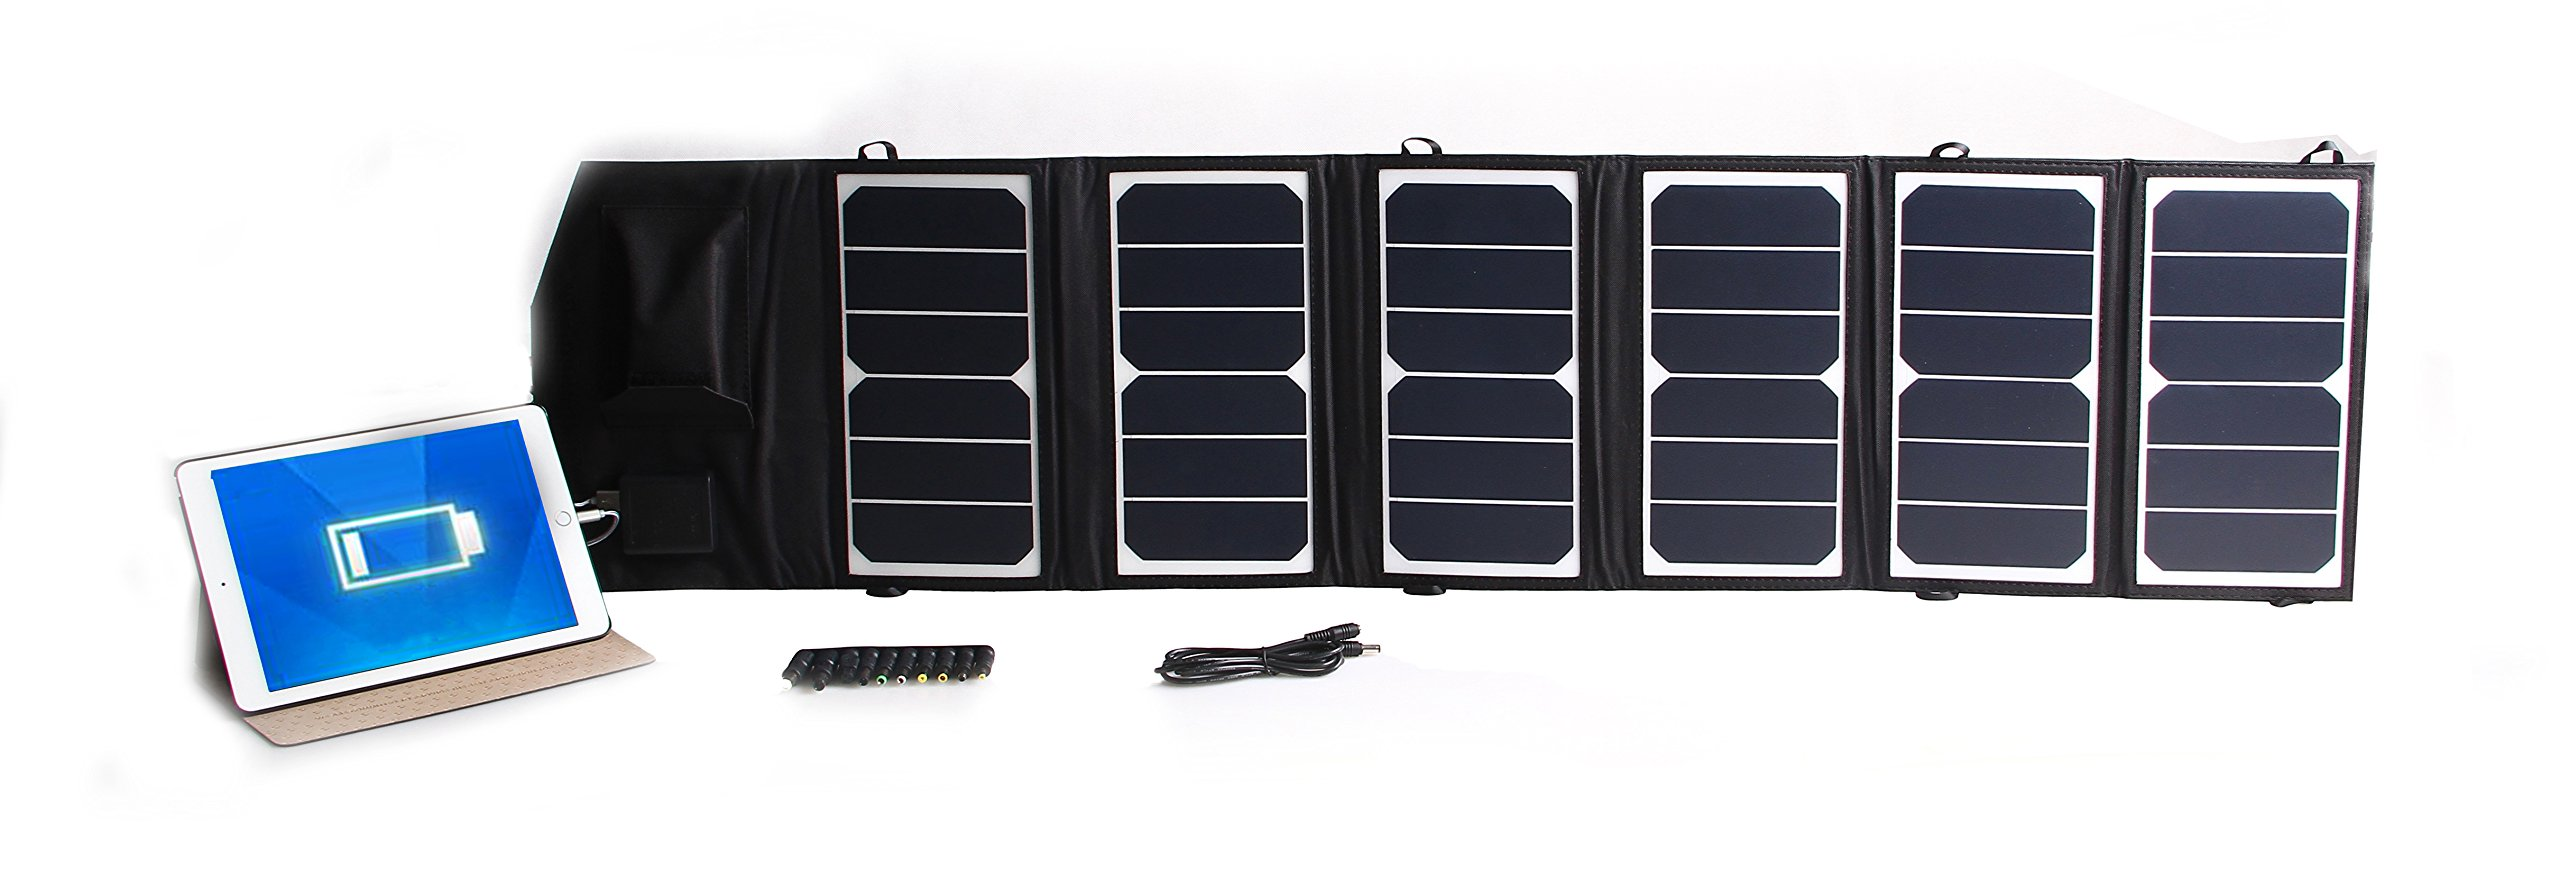 TOPDC 39W Solar Panel Charger Portable Foldable High Efficiency Solar USB Charger (5V USB + 18V DC) for Phone Laptop Samsung iPad GPS Gopro Dell HP Notebook Headset and More by TOPDC (Image #7)